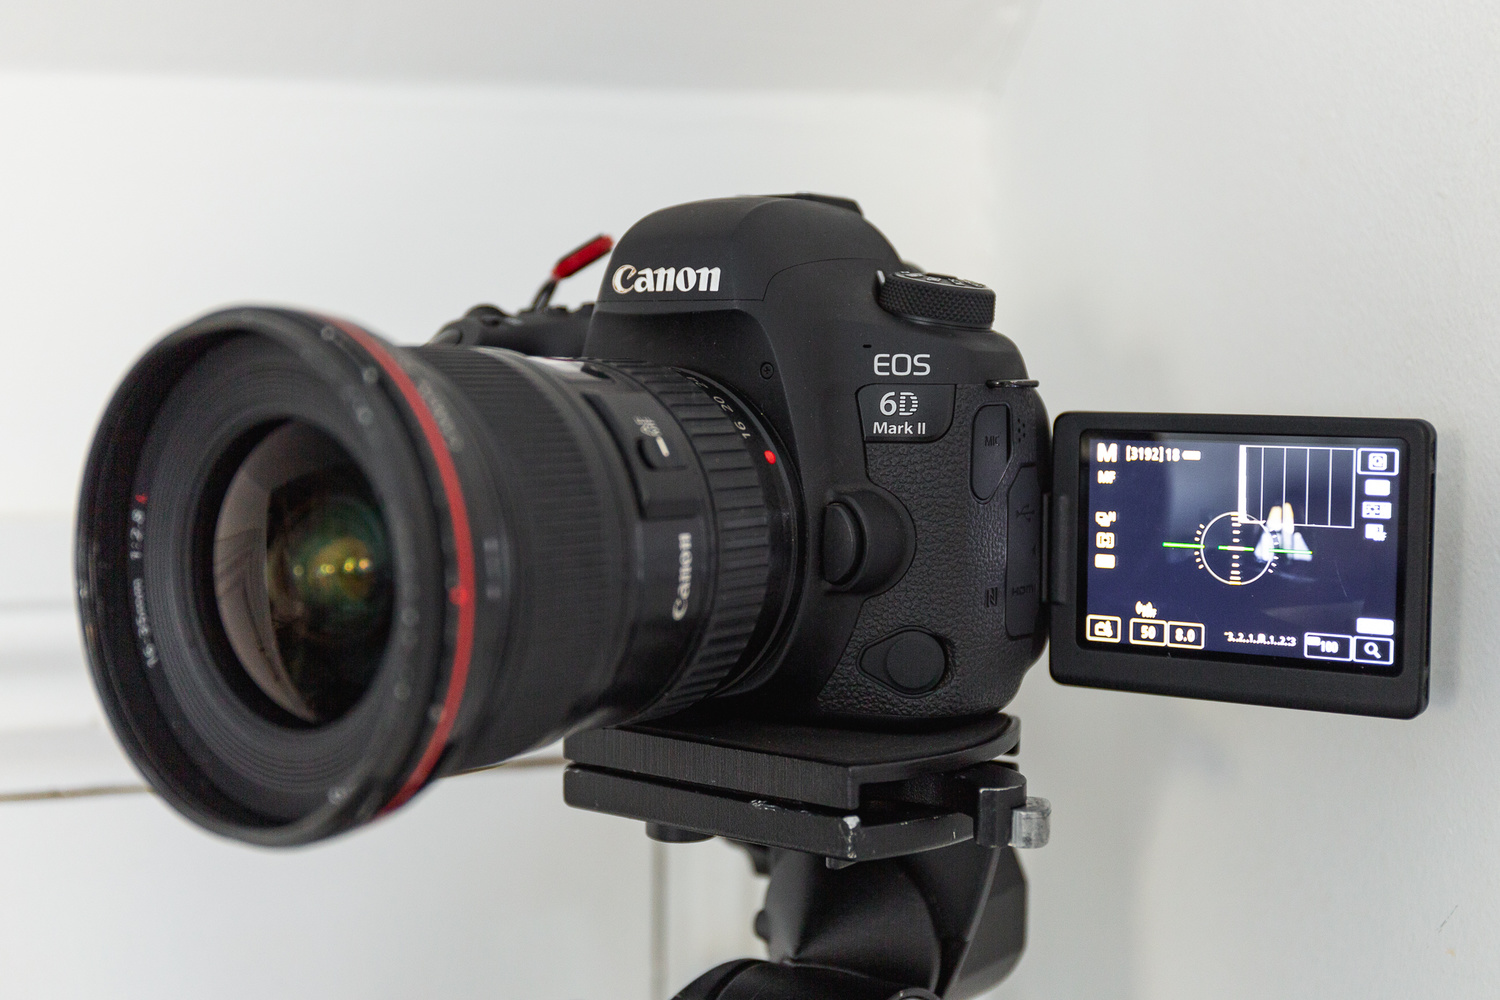 the Canon 6D MKII with vari-angle LCD screen on a Manfrotto Geared Tripod Head